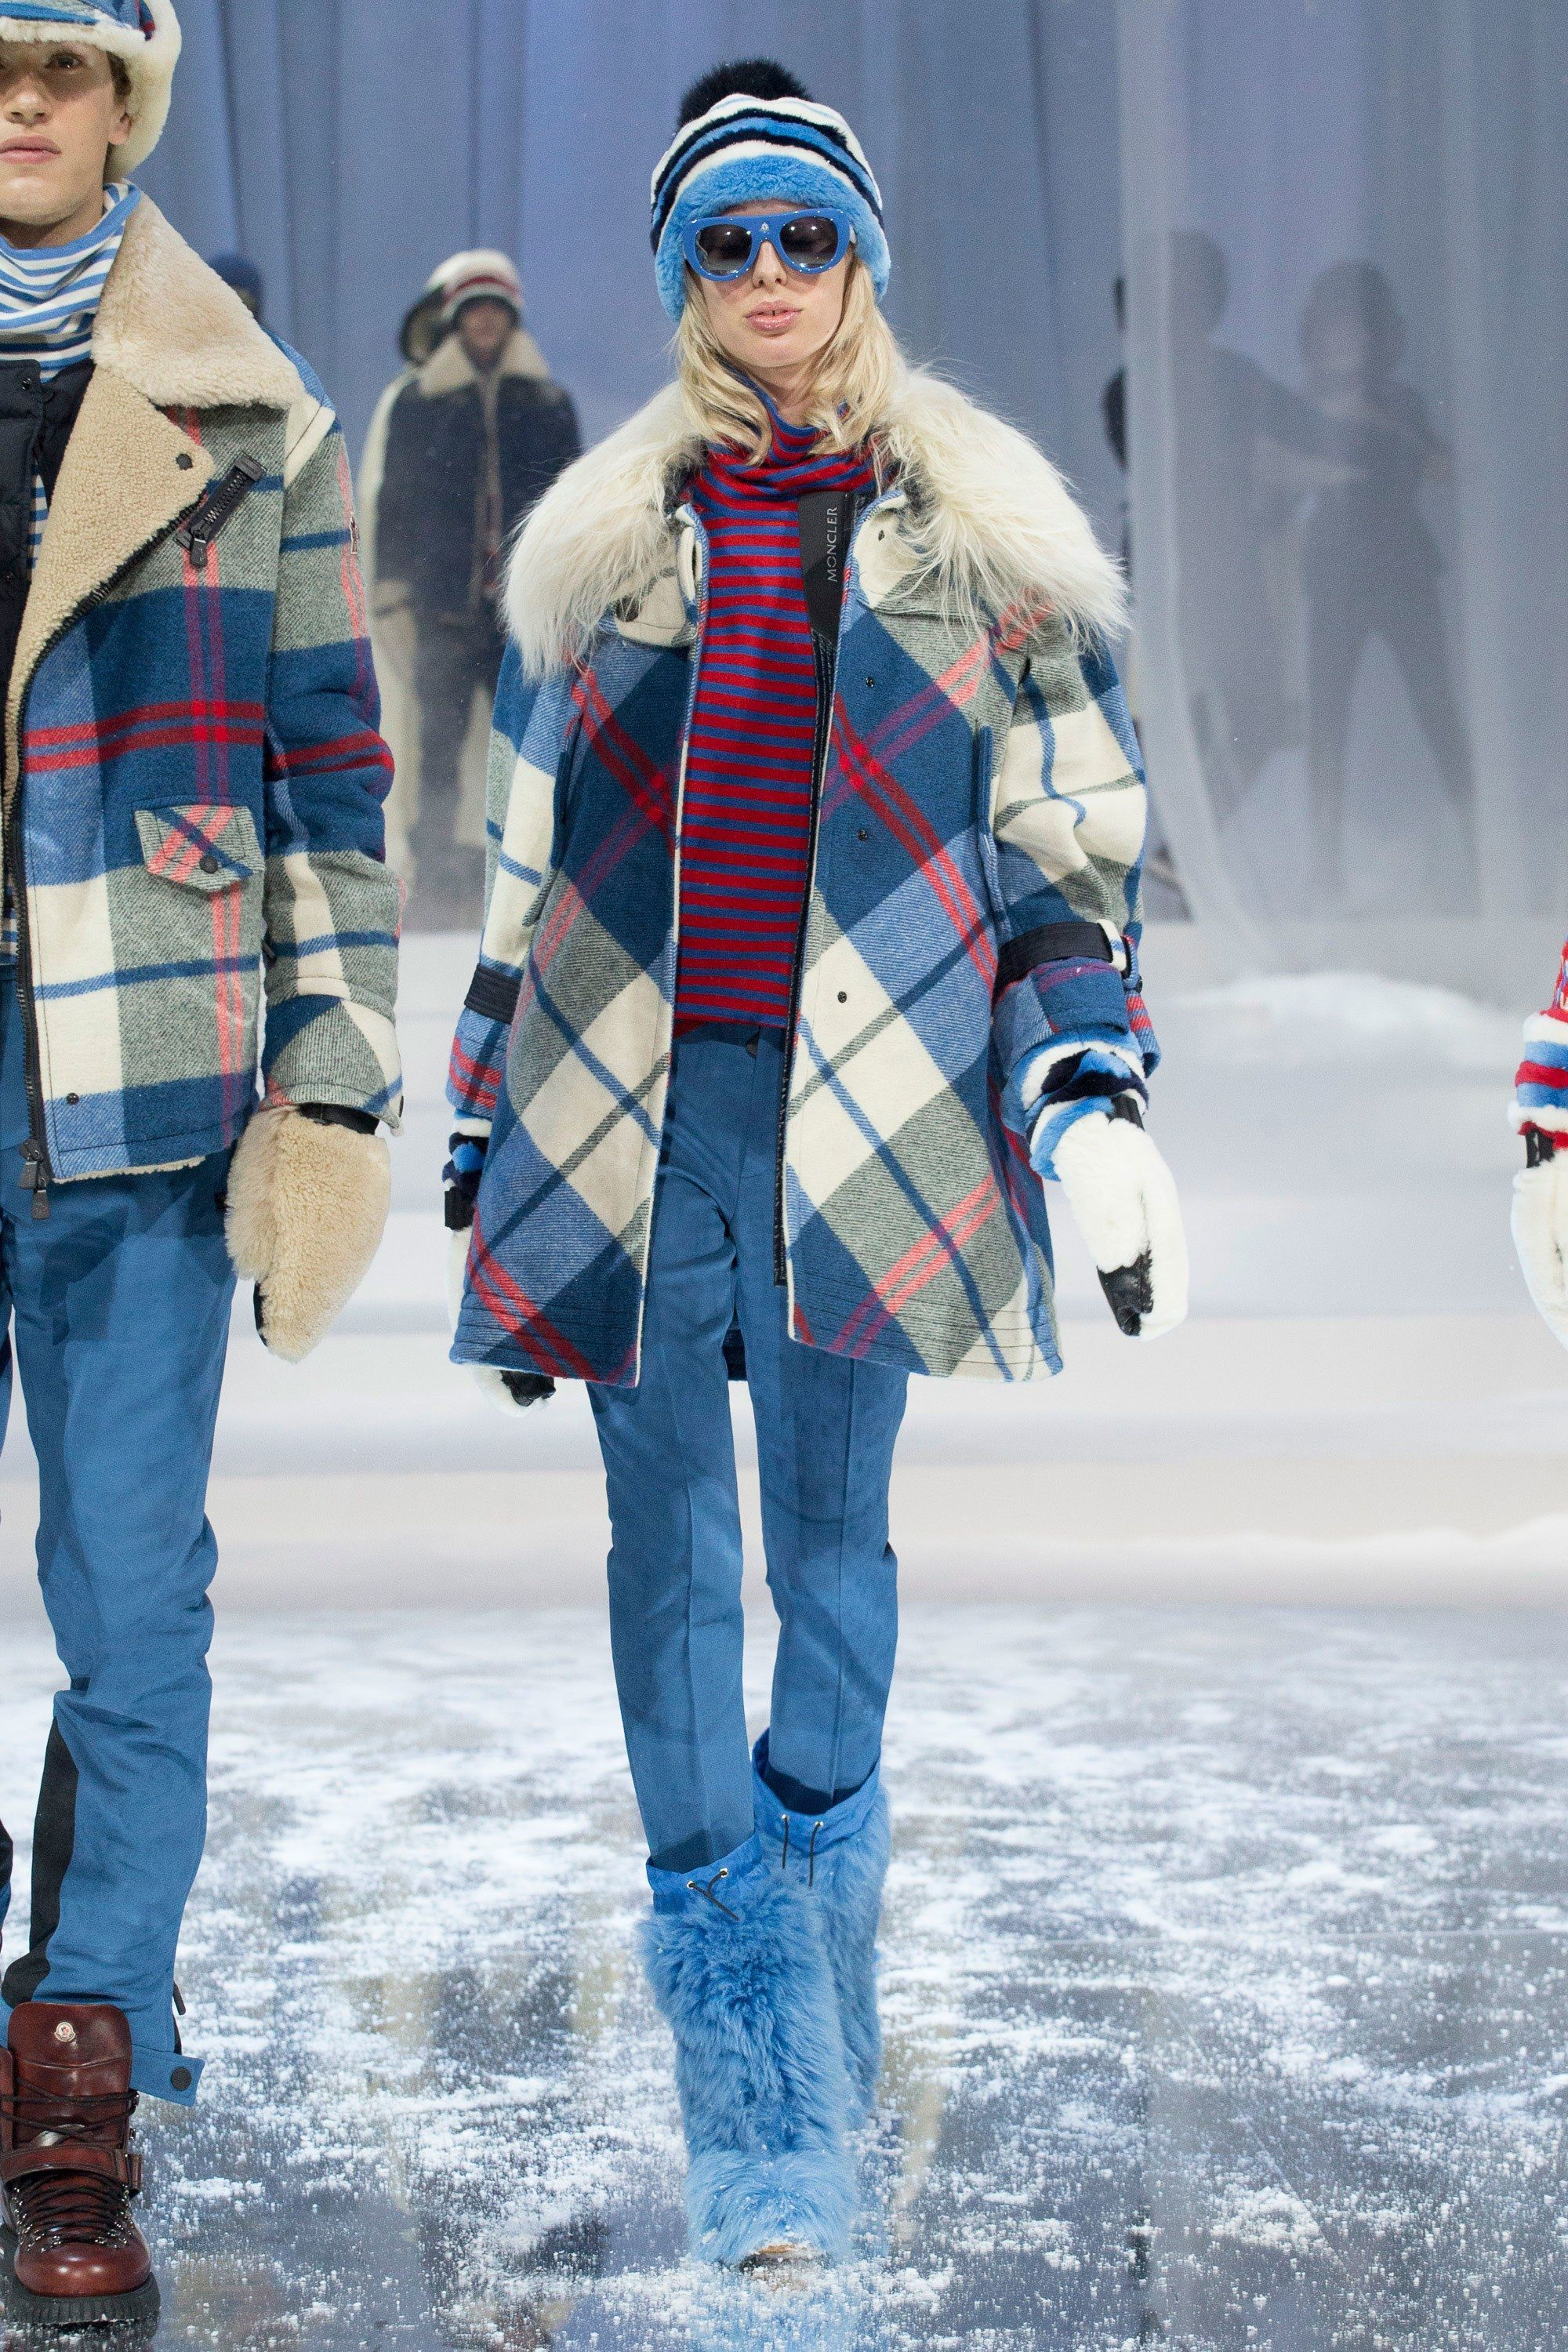 412c35df2 Moncler Grenoble Autumn/Winter 2017 Ready to Wear | Plaid and Tartan ...